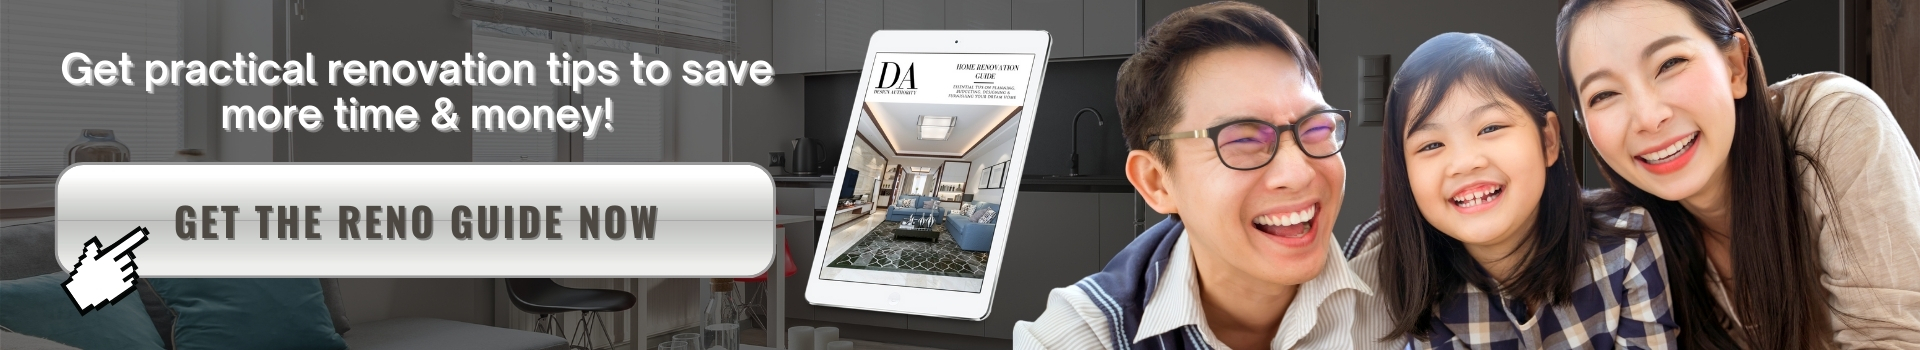 home renovation guide by Design Authority